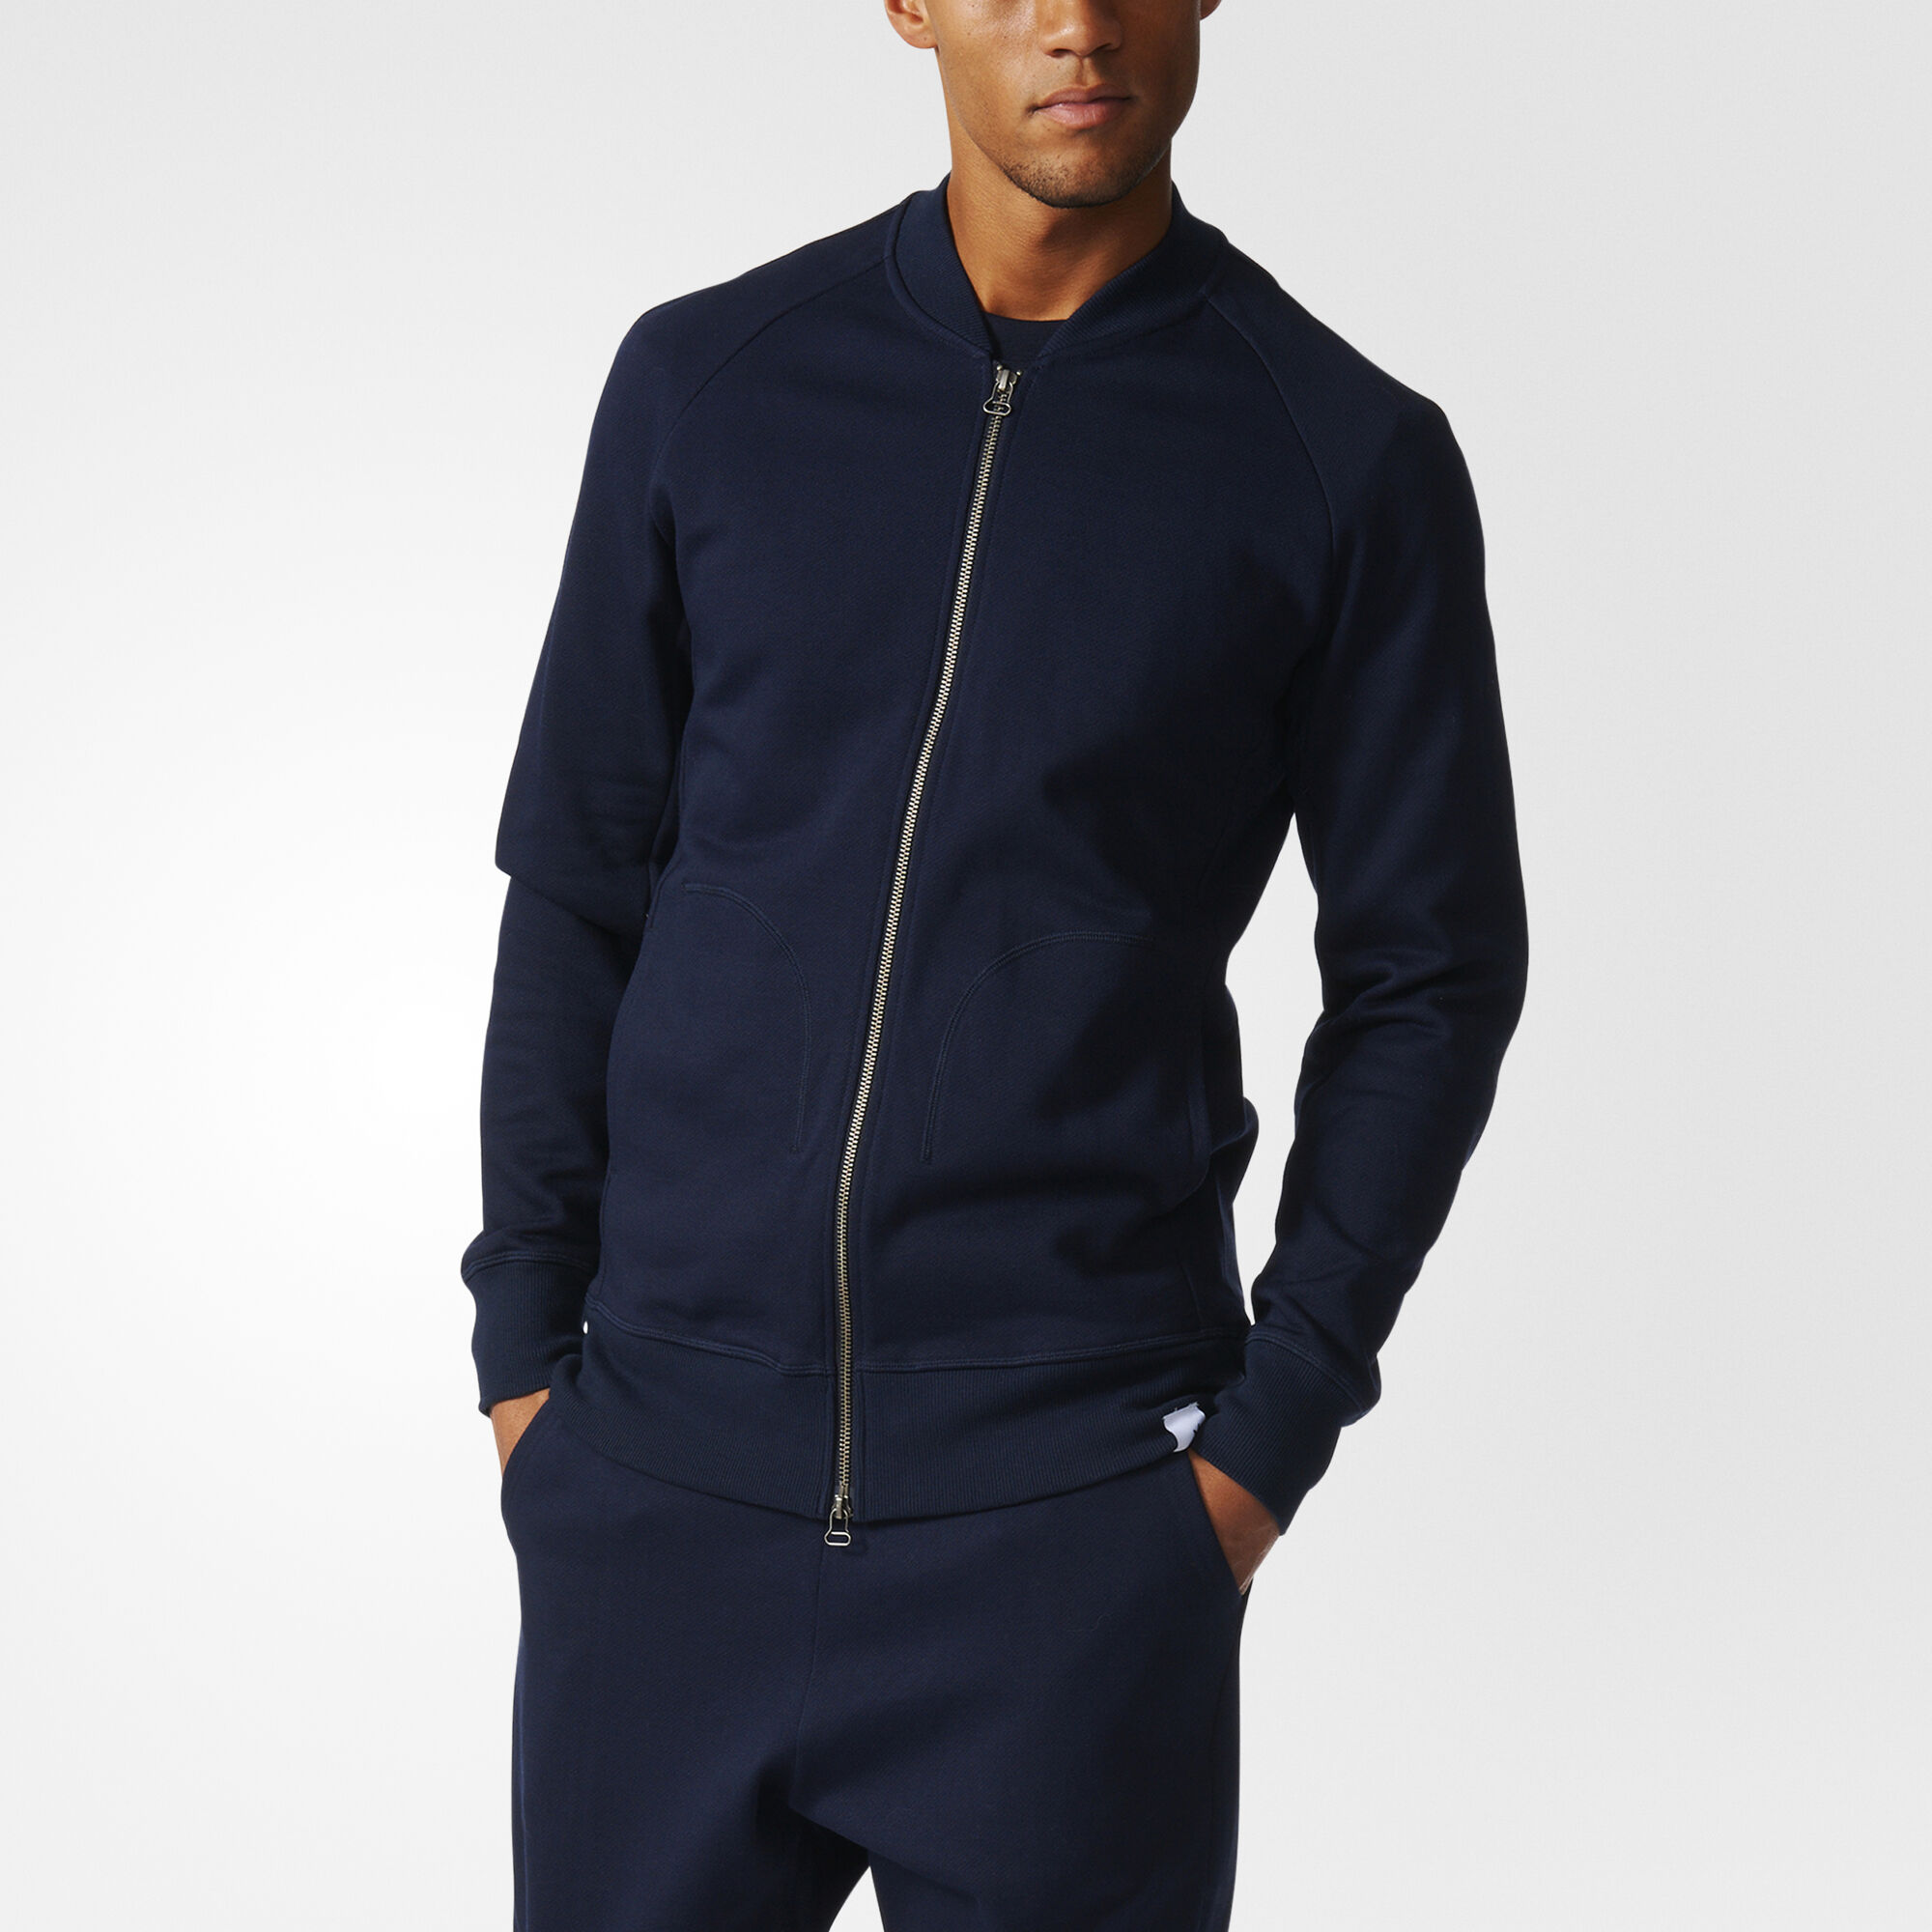 6a3d67bfe adidas originals jacket,adidas running boost > OFF41% Originals ...